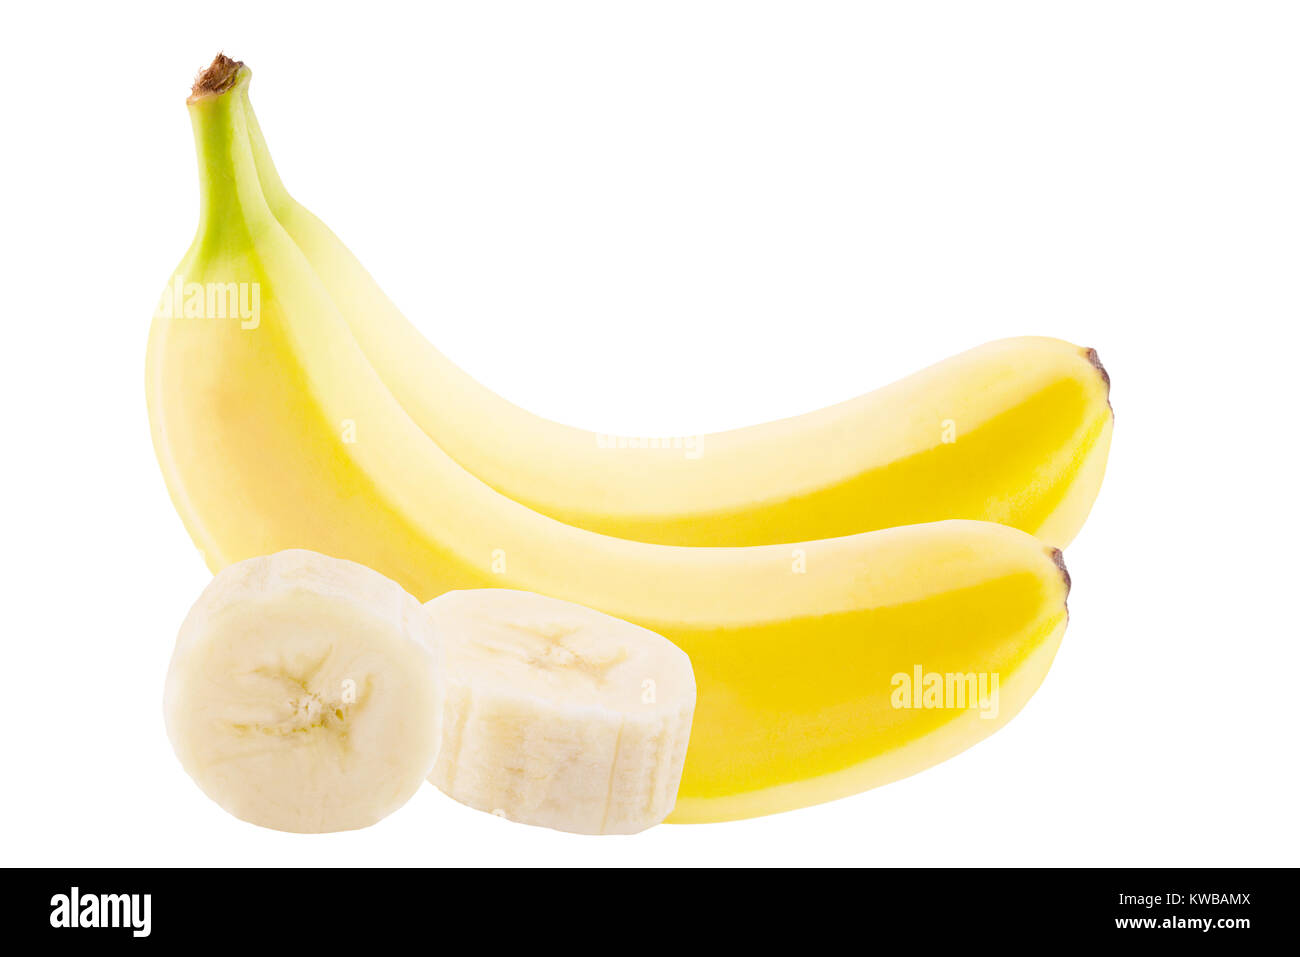 Isolated banana. Two whole fresh banana and trhee slices on white background with clipping path - Stock Image